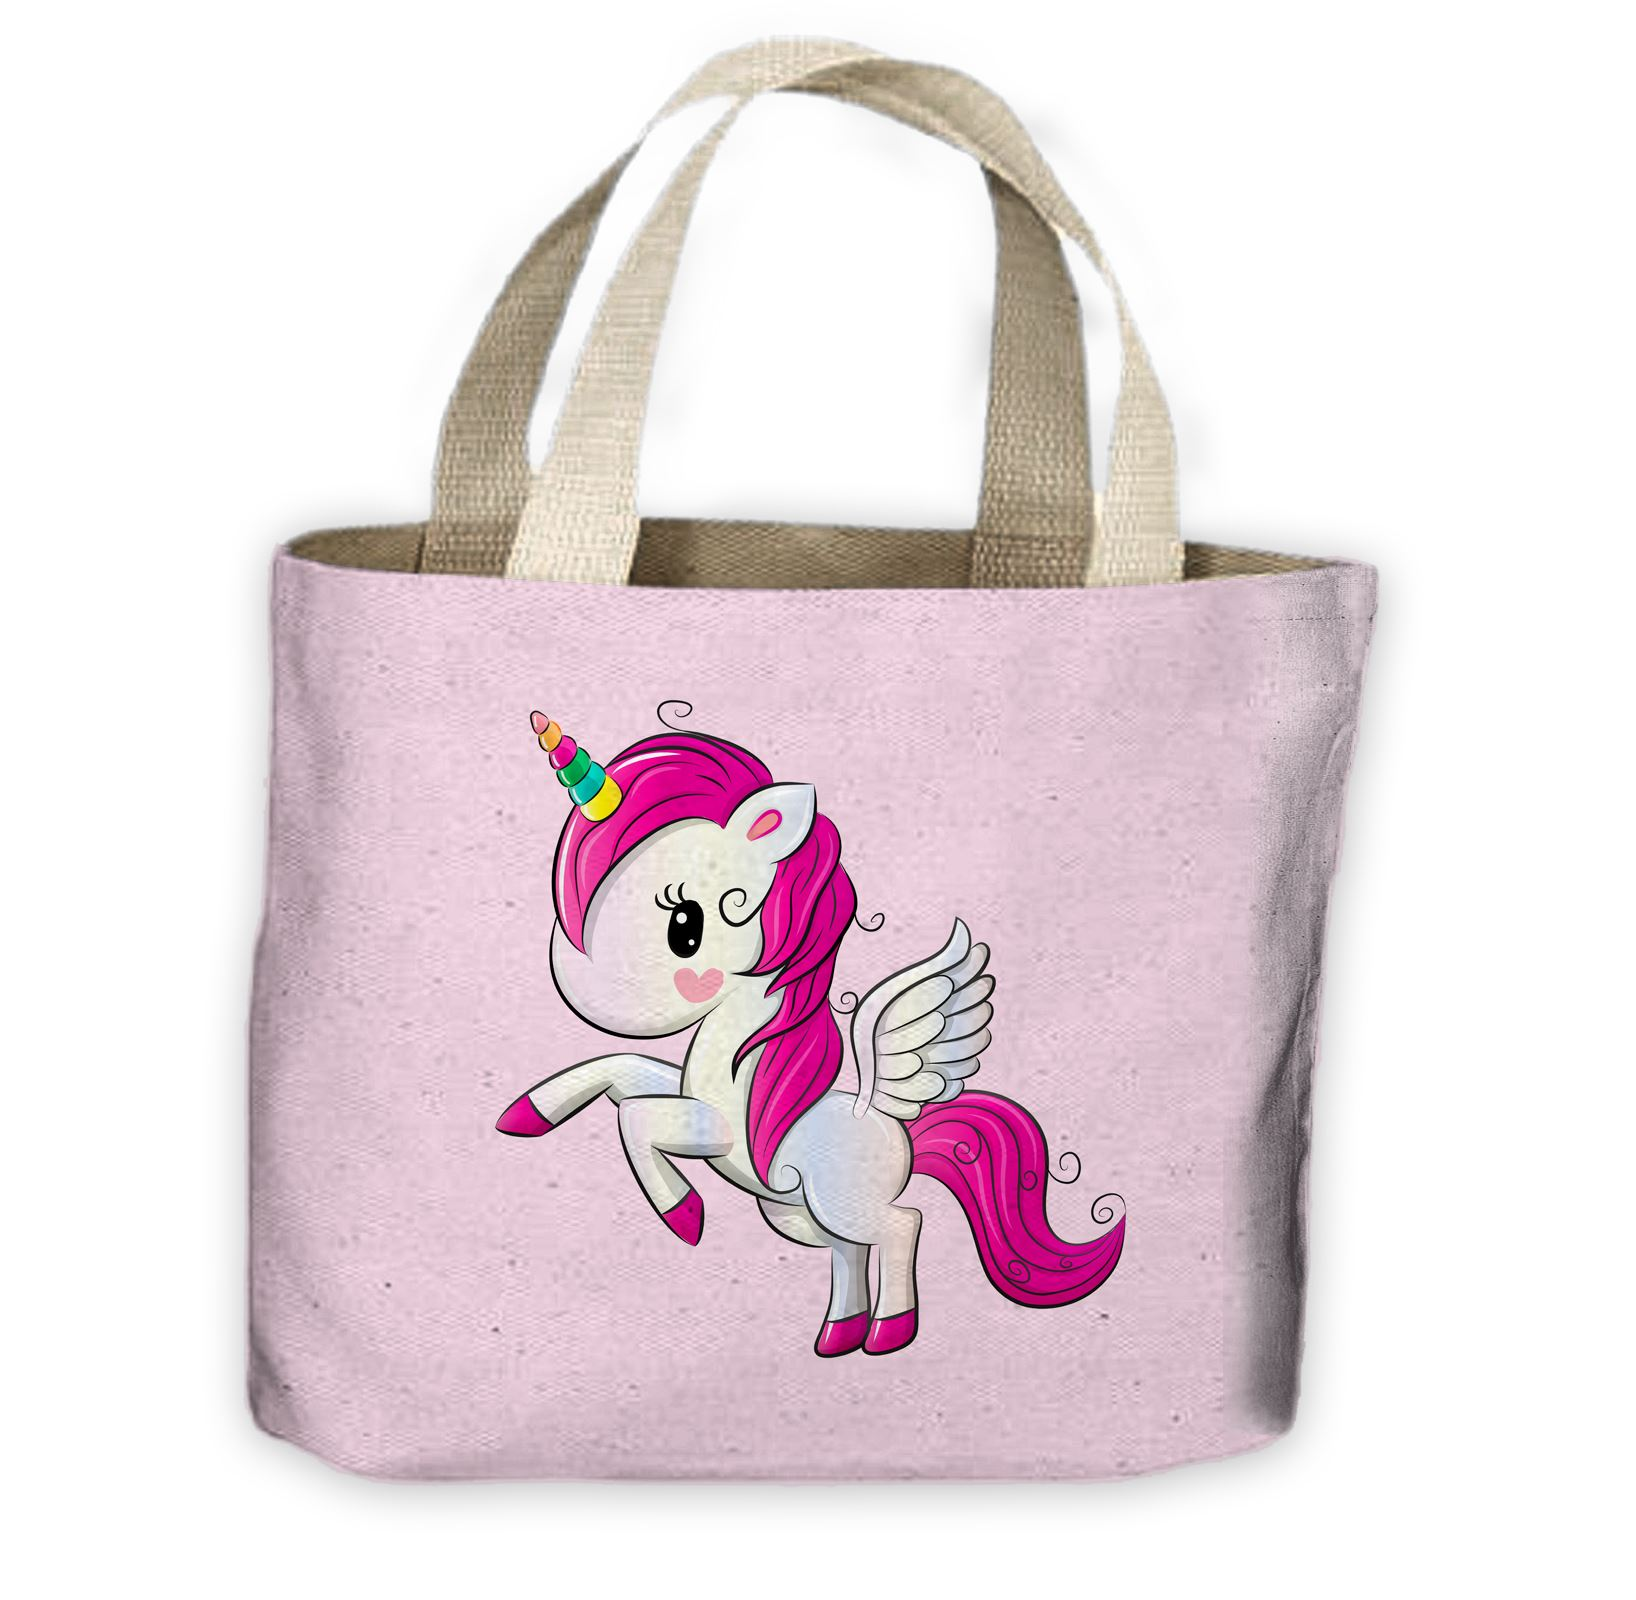 d4f1e2fc3c54 Details about Cartoon Unicorn All Over Tote Shopping Bag For Life